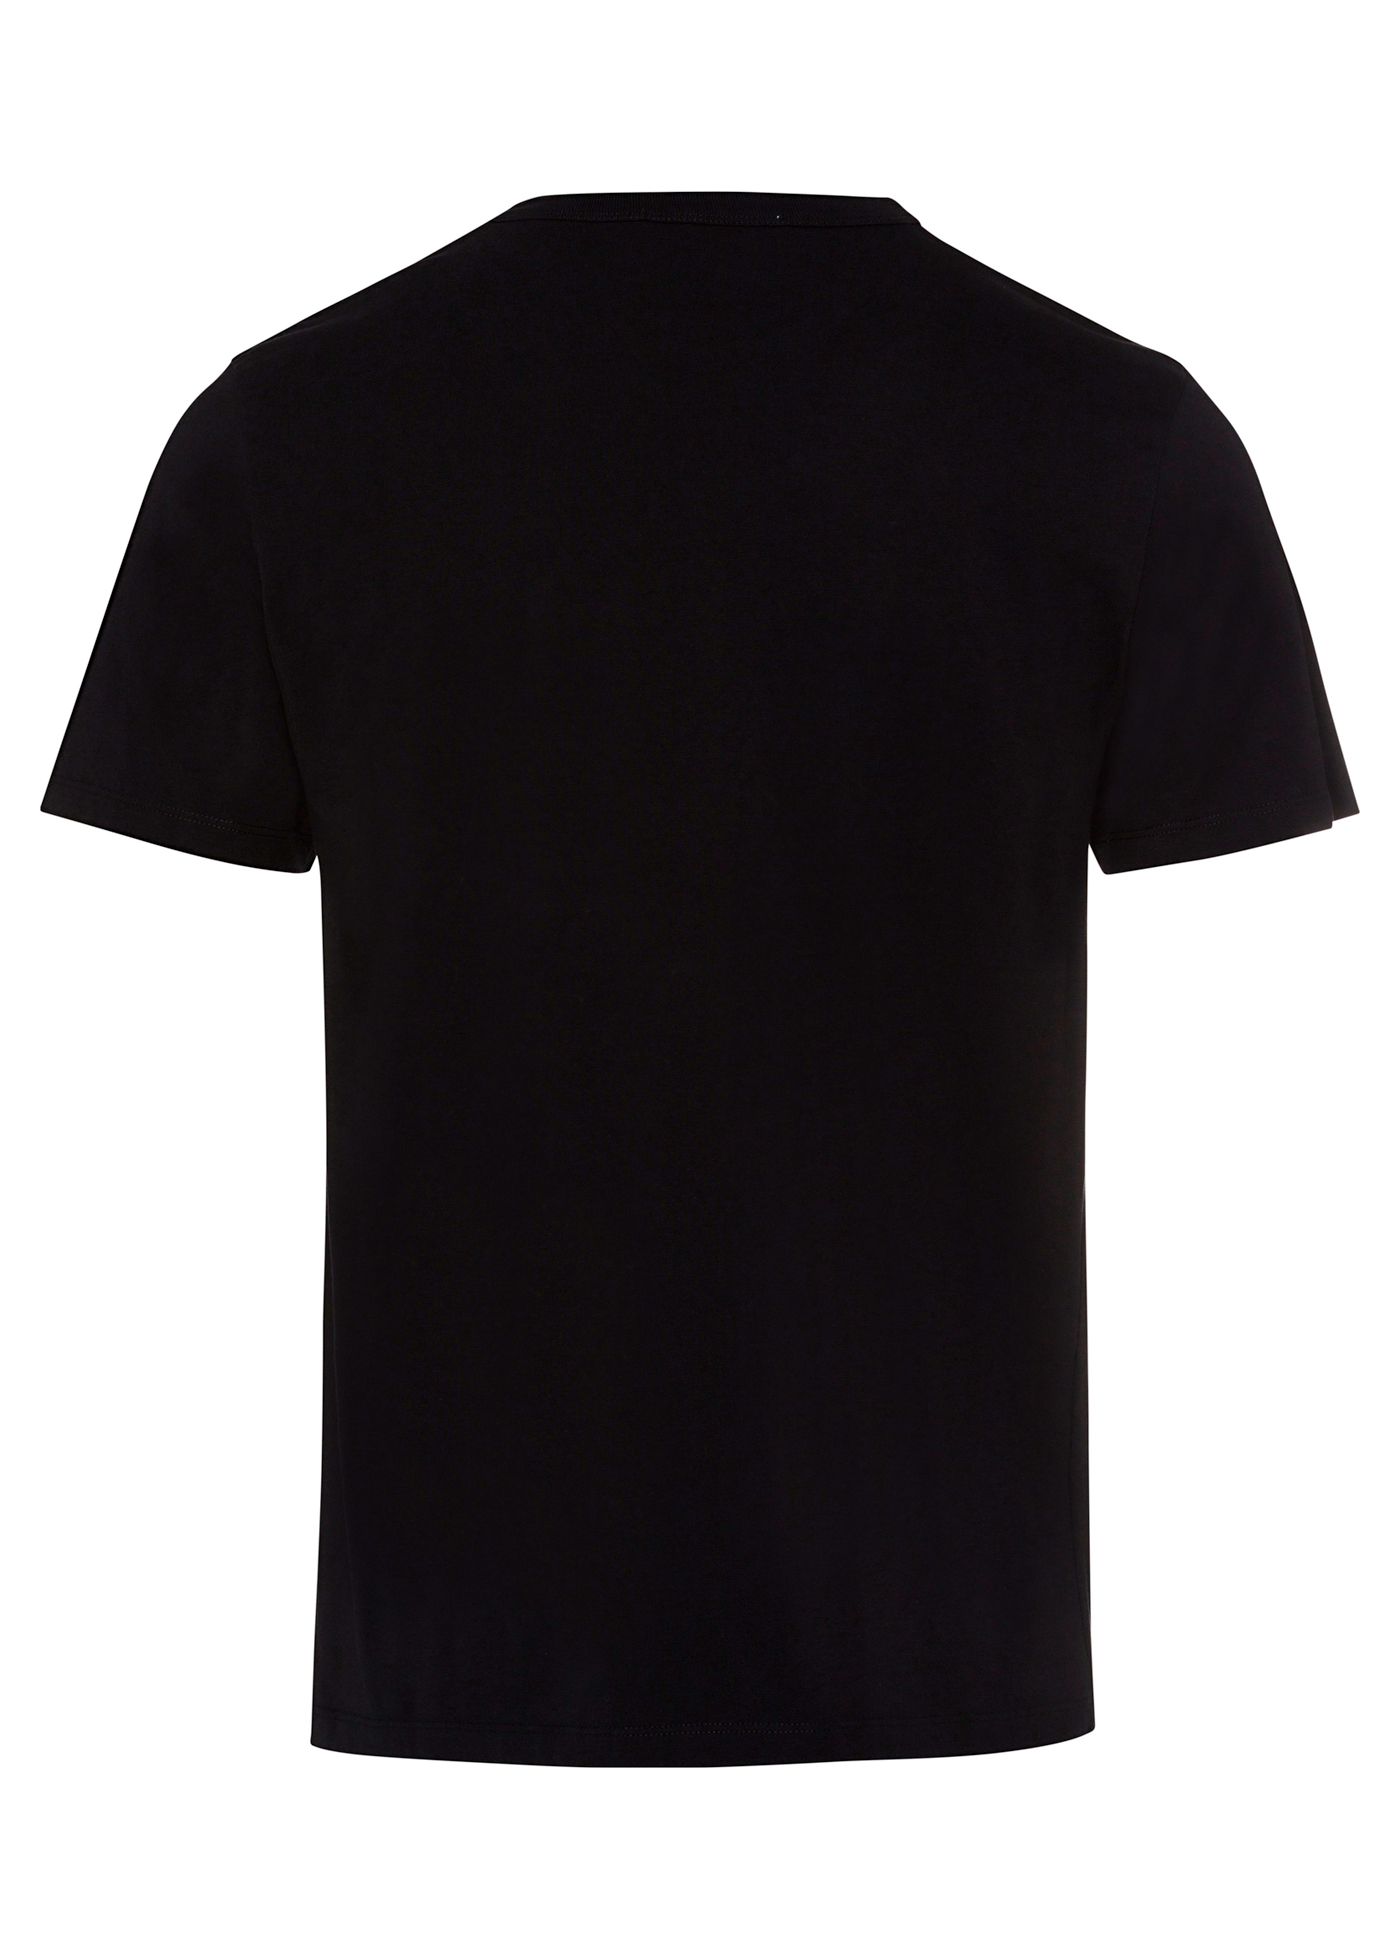 FOX HEAD PATCH CLASSIC TEE-SHIRT image number 1